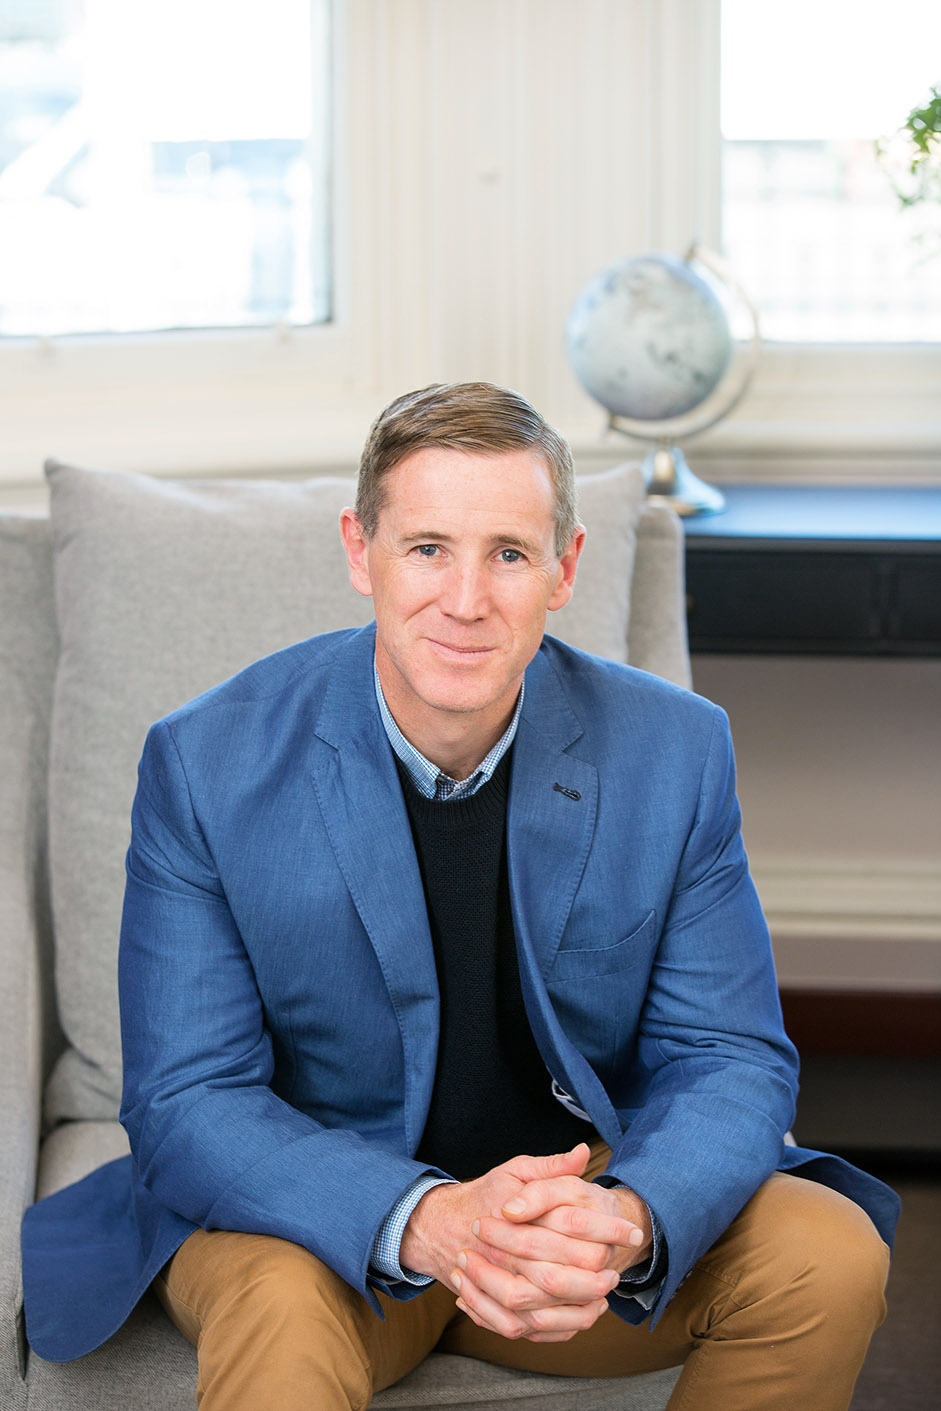 James Kelly is a Financial Adviser/Principal who is the investment specialist. You can contact James either on his mobile 0403 073 512 or via email  james@ambleside.net.au